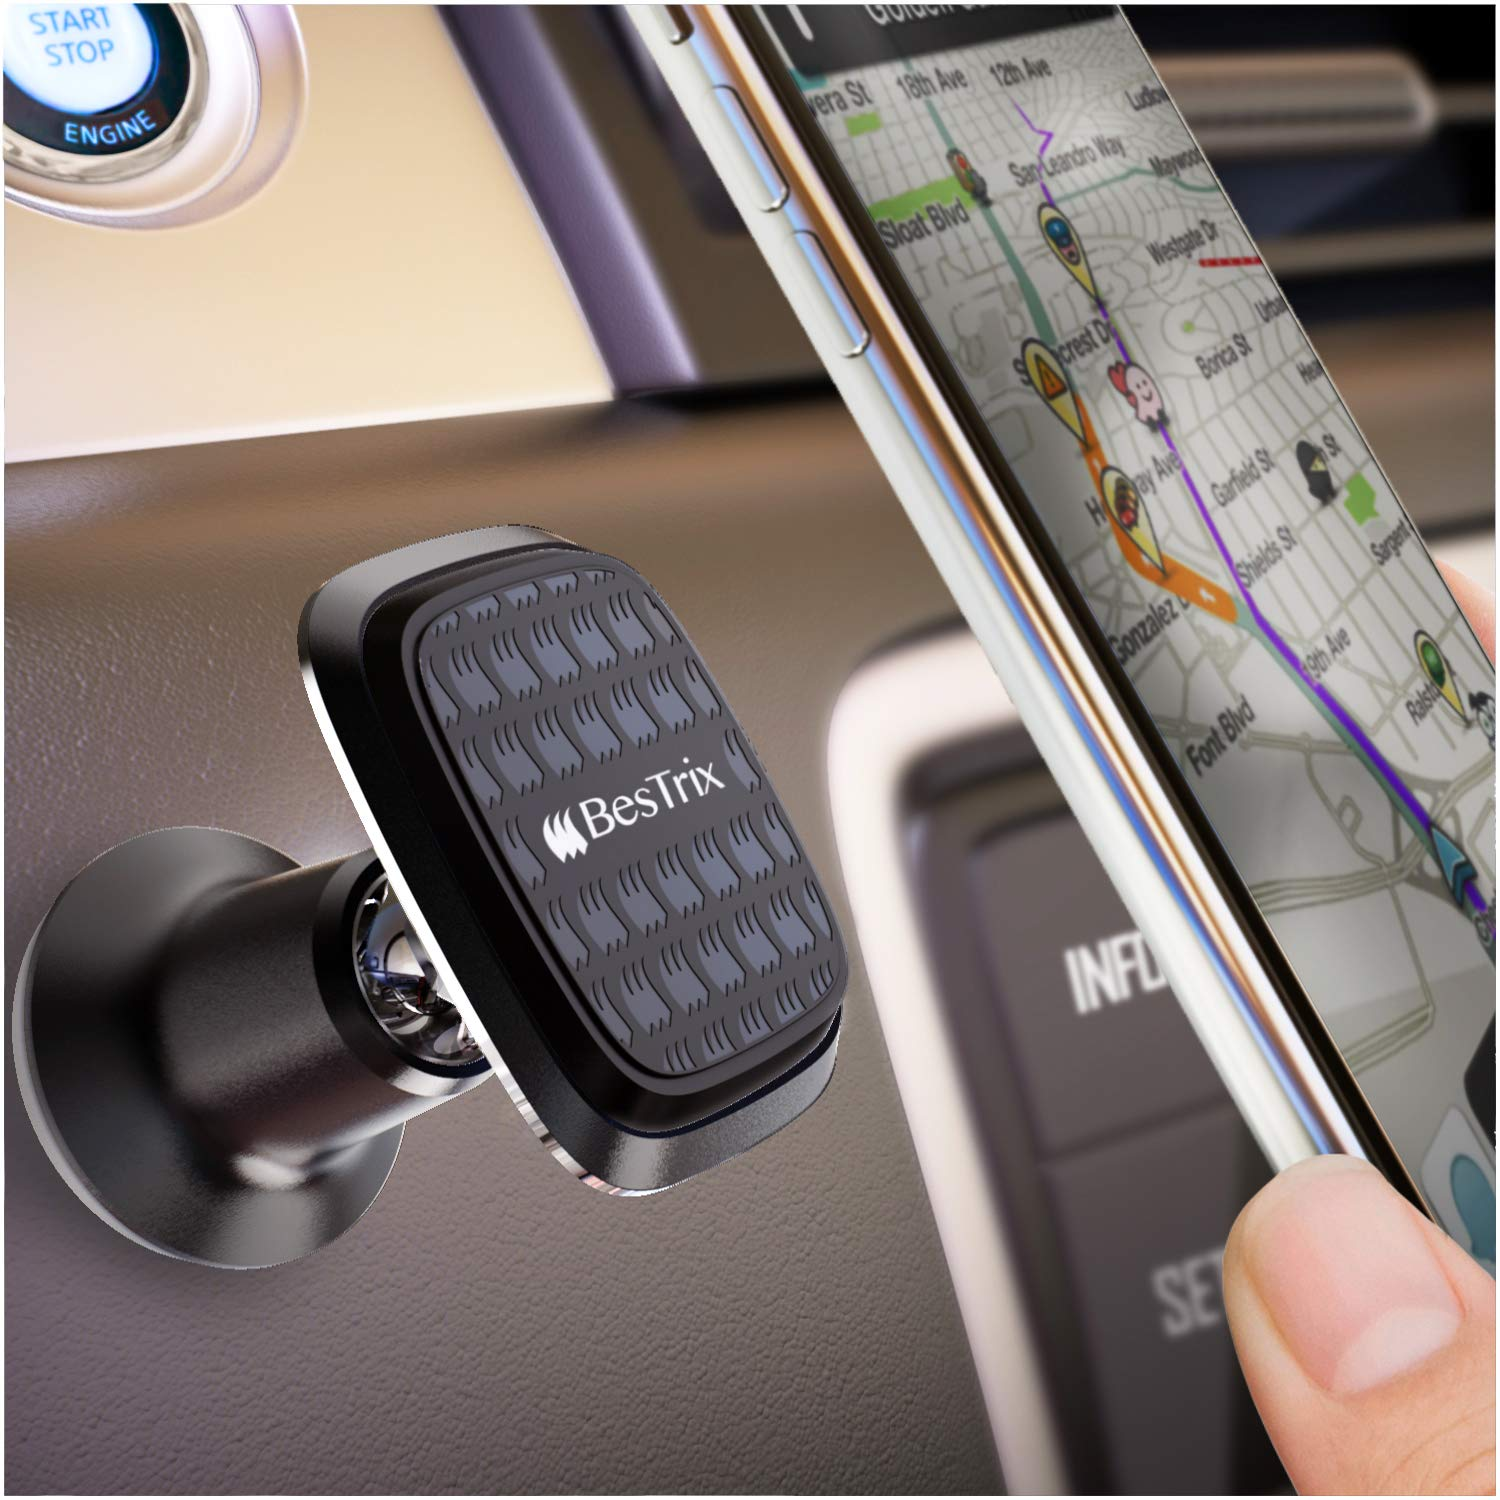 Magnetic car Mount Universal car Interior Phone Holder Compatible with All Smartphones and Mini Tablets by Bestrix (Black)